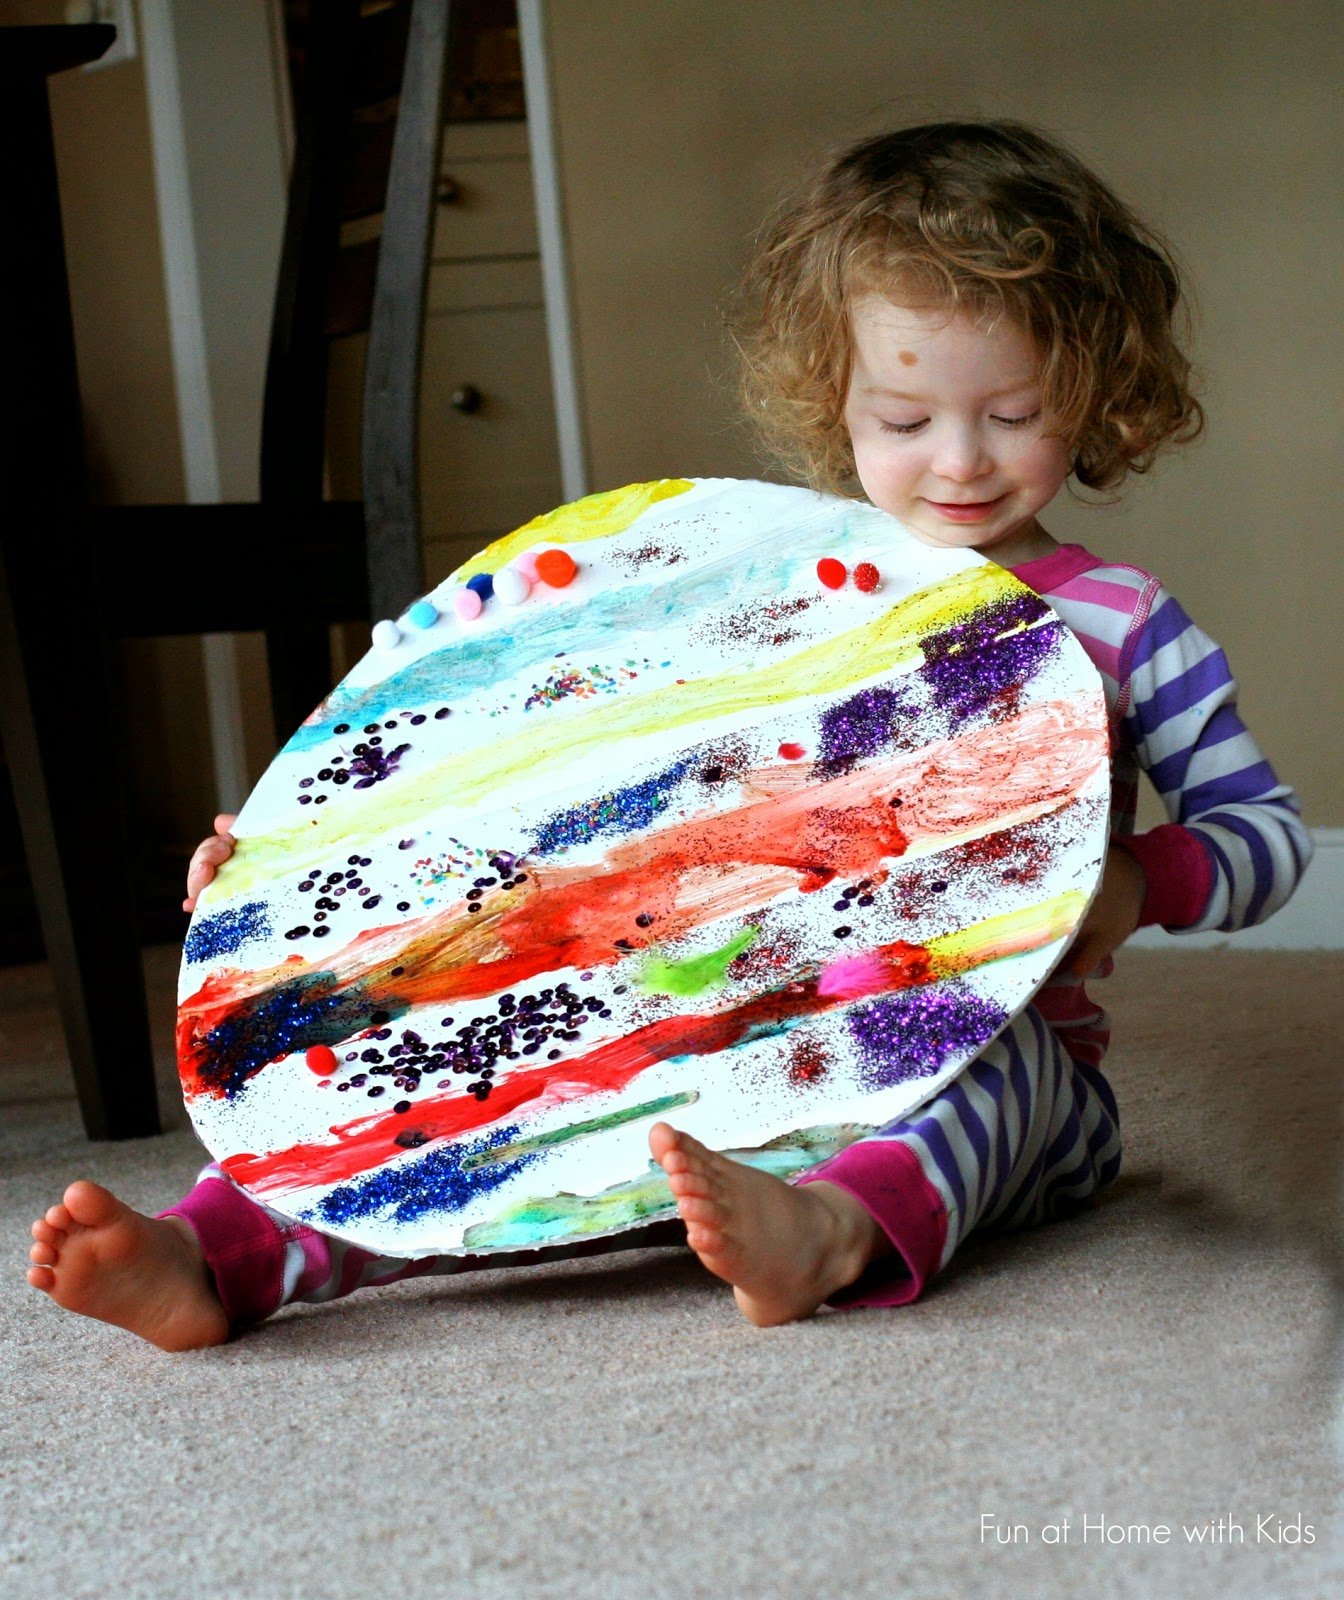 Giant Easter Egg Art from Fun at Home with Kids